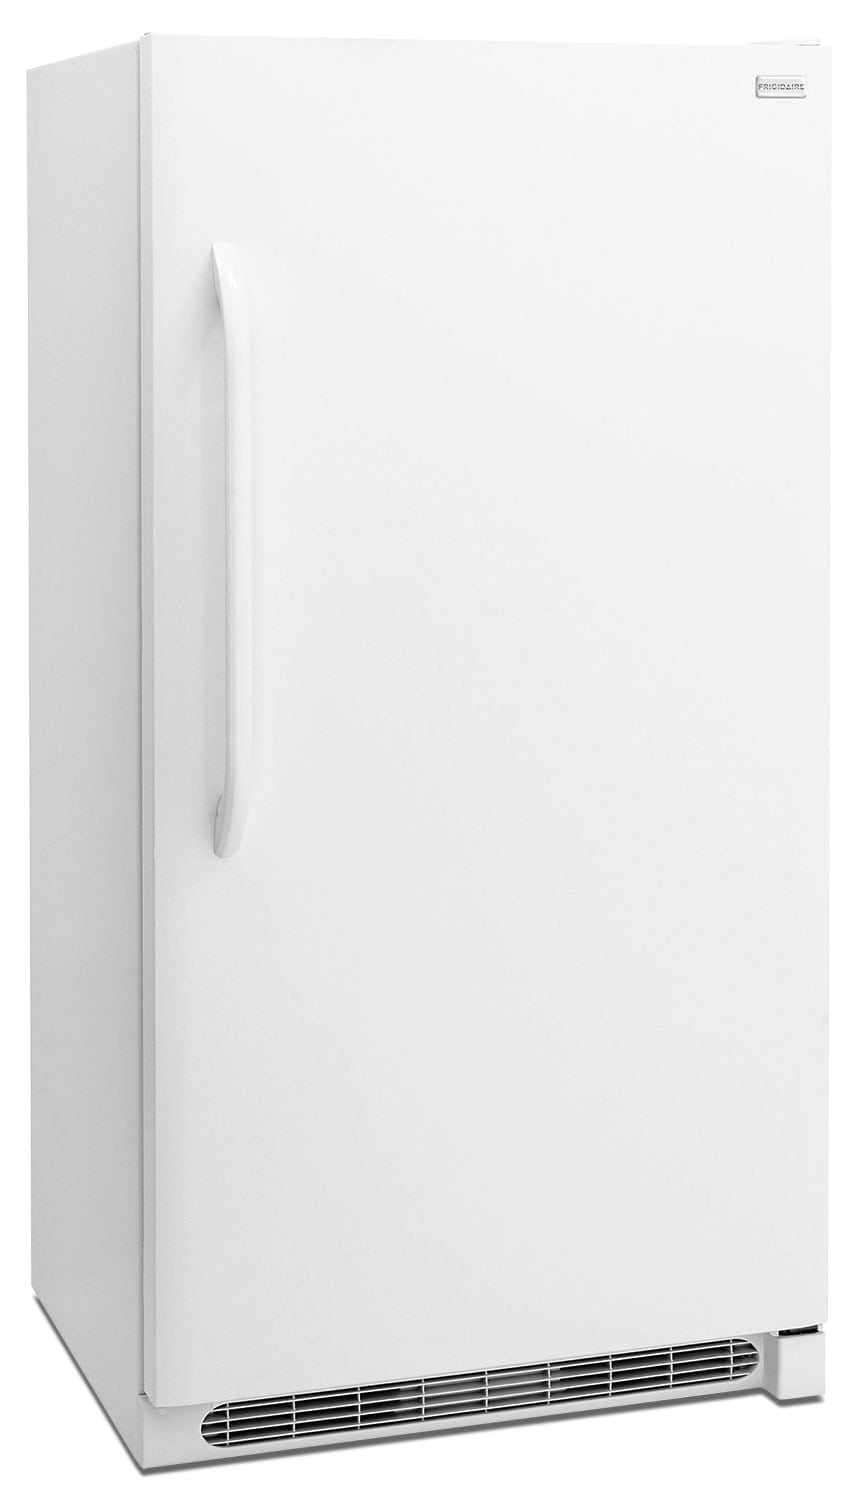 frigidaire white upright 2in1 convertible 205 cu ft ffvu21f4qw - Frigidaire Upright Freezer